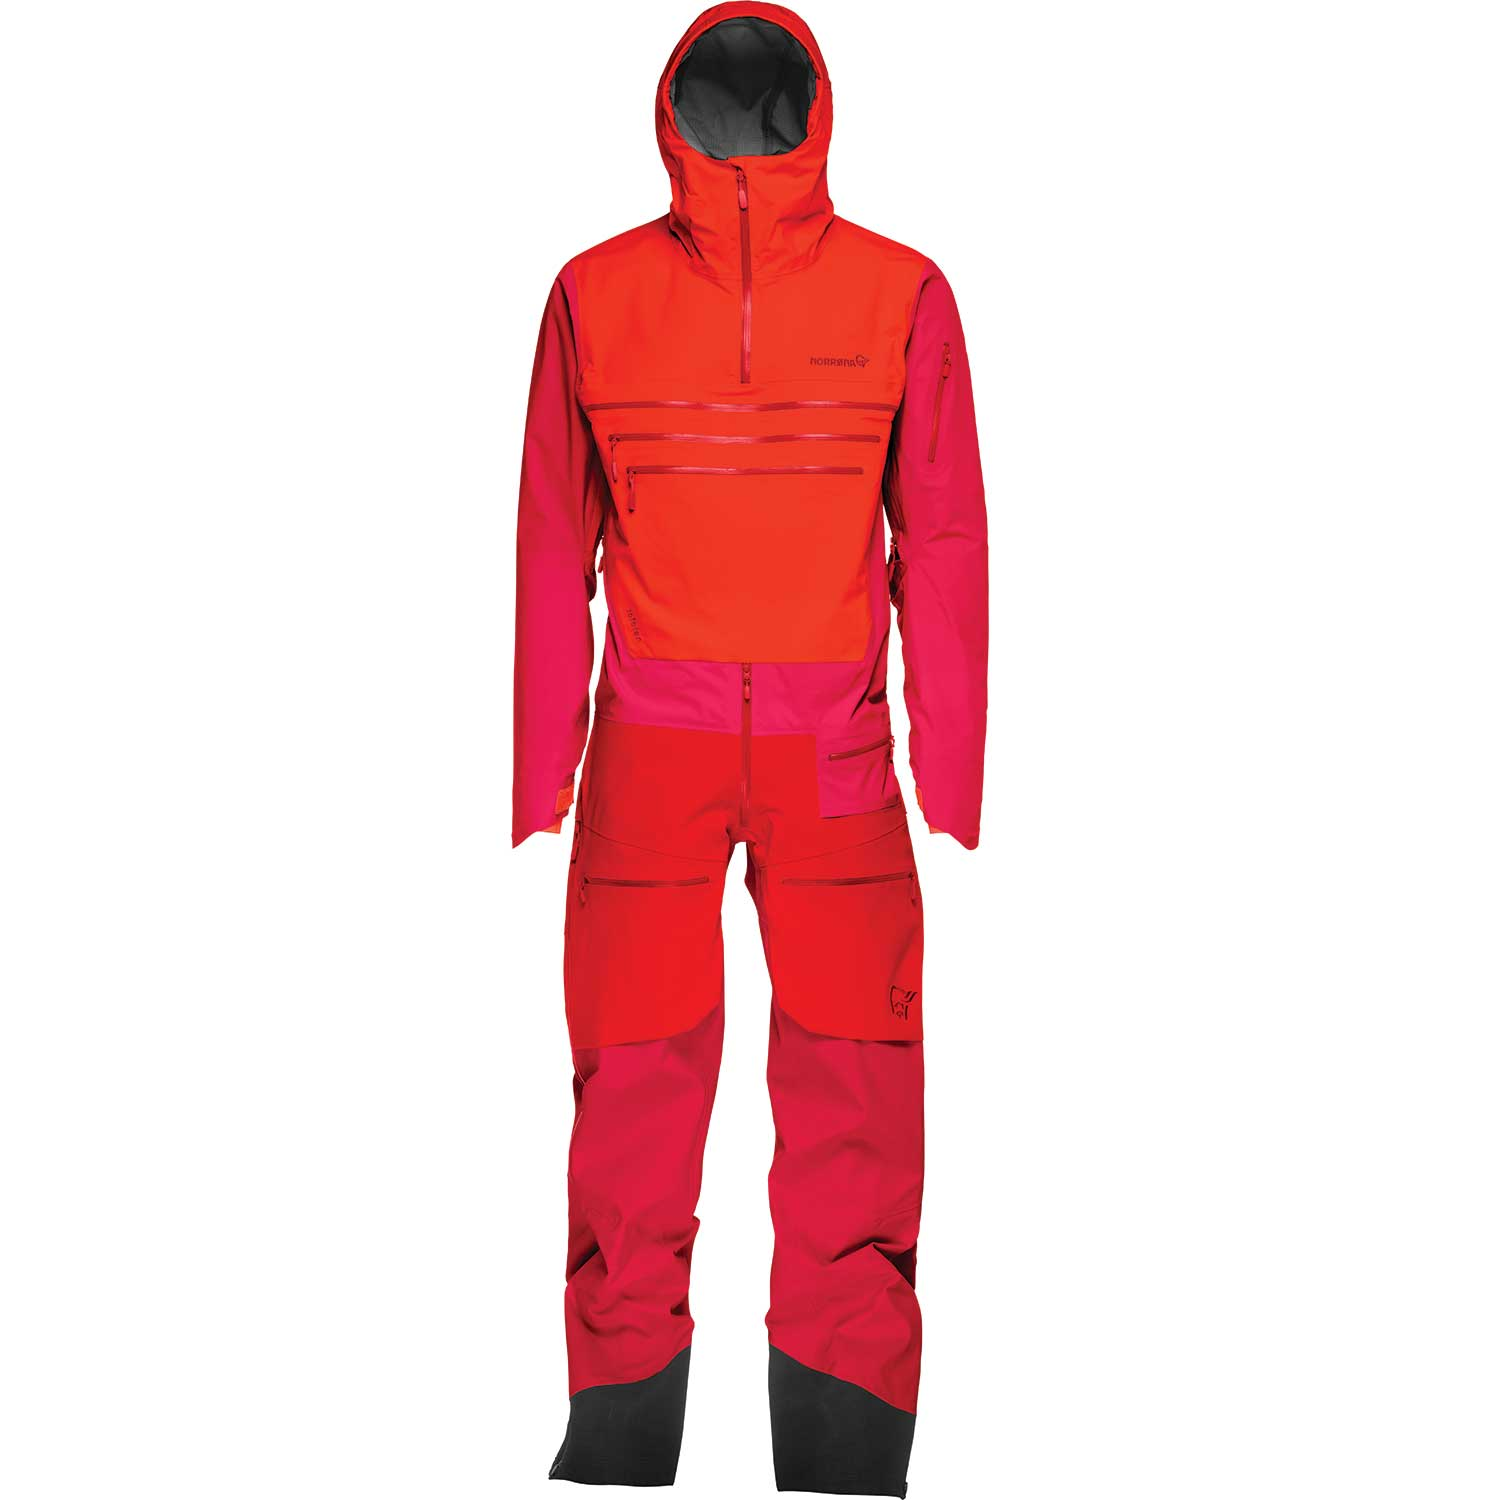 lofoten Gore-Tex Pro One-Piece Suit (M/W)